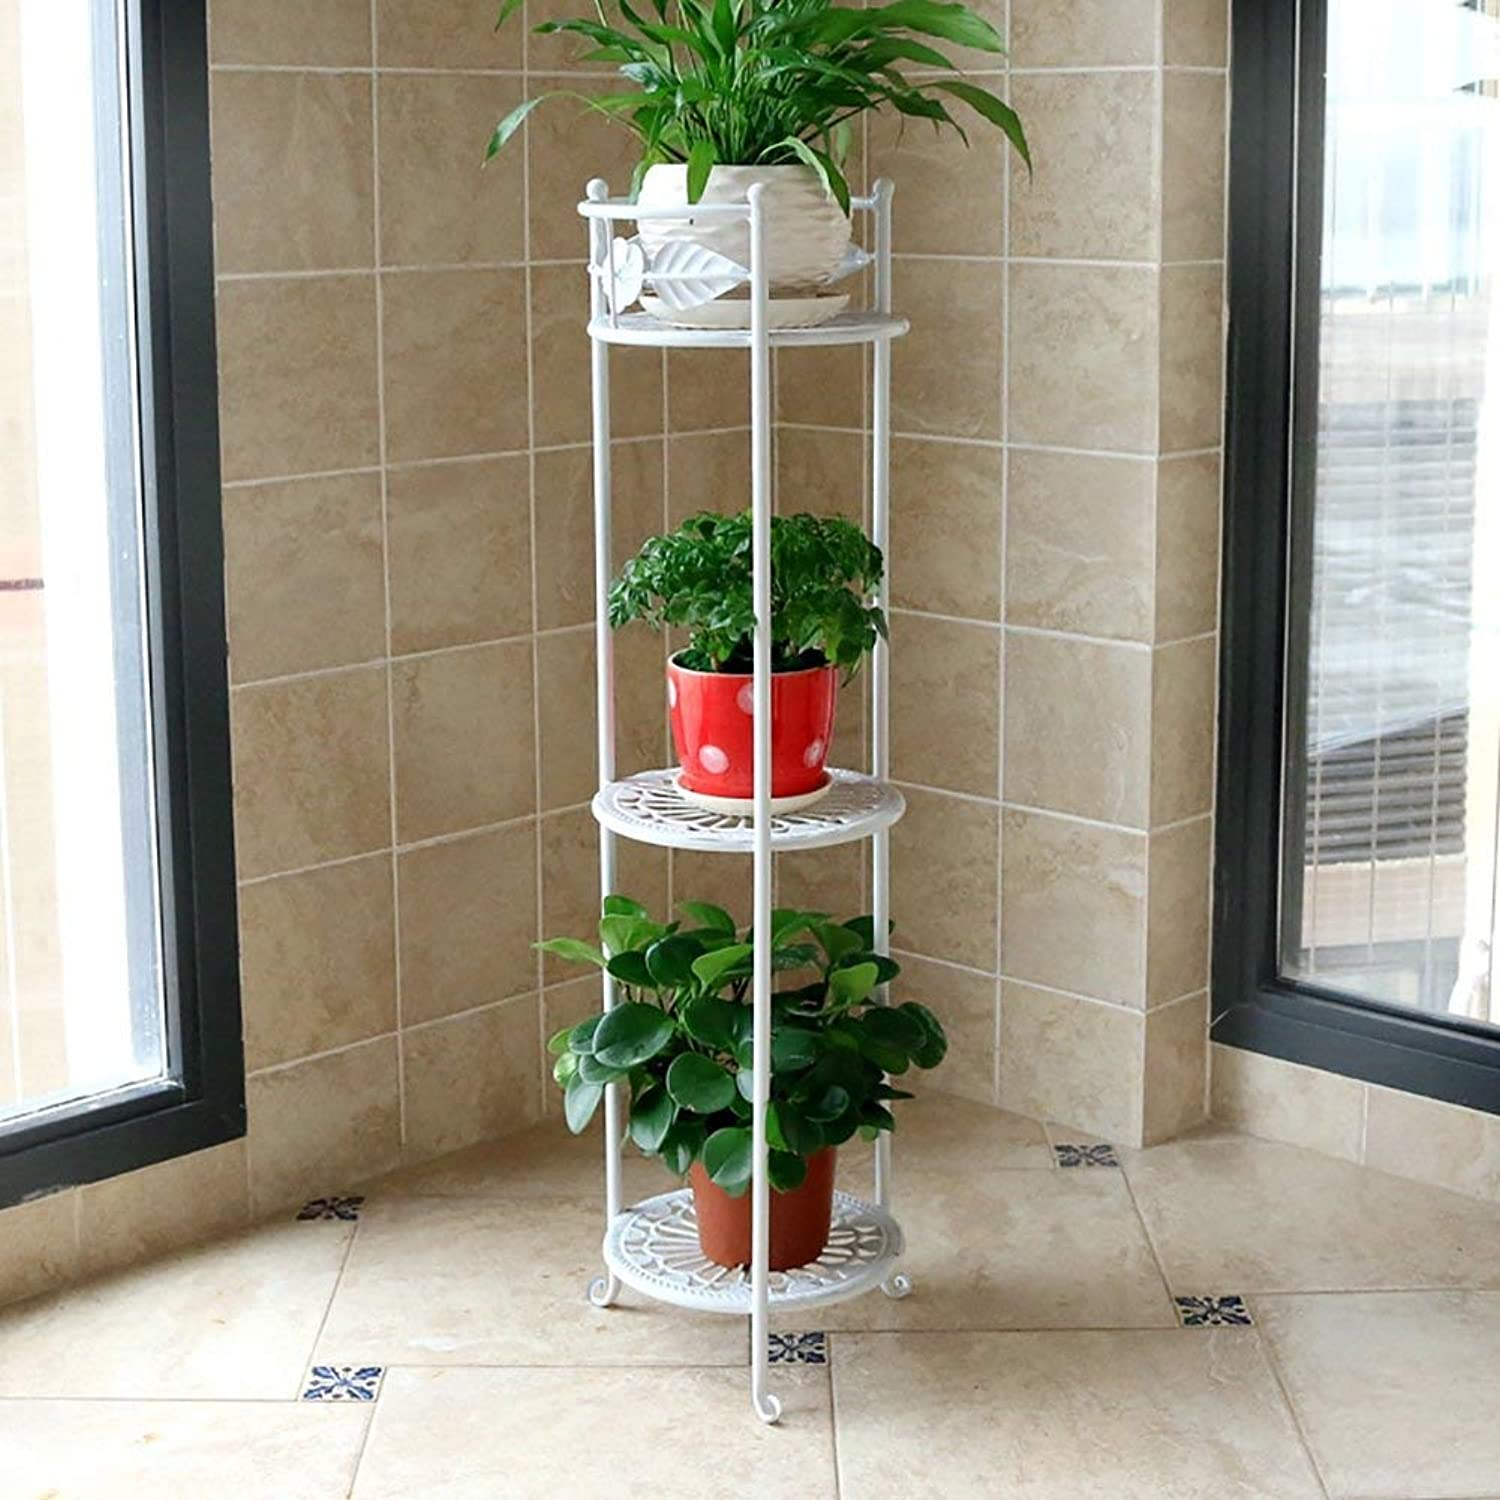 Shiyanghang Outdoor Indoor Display Plant Stand Wrought Iron Flower Shelf Multi-Layer Floor Balcony Indoor Living Room Space to Spend (color   White, Size   26×78cm)